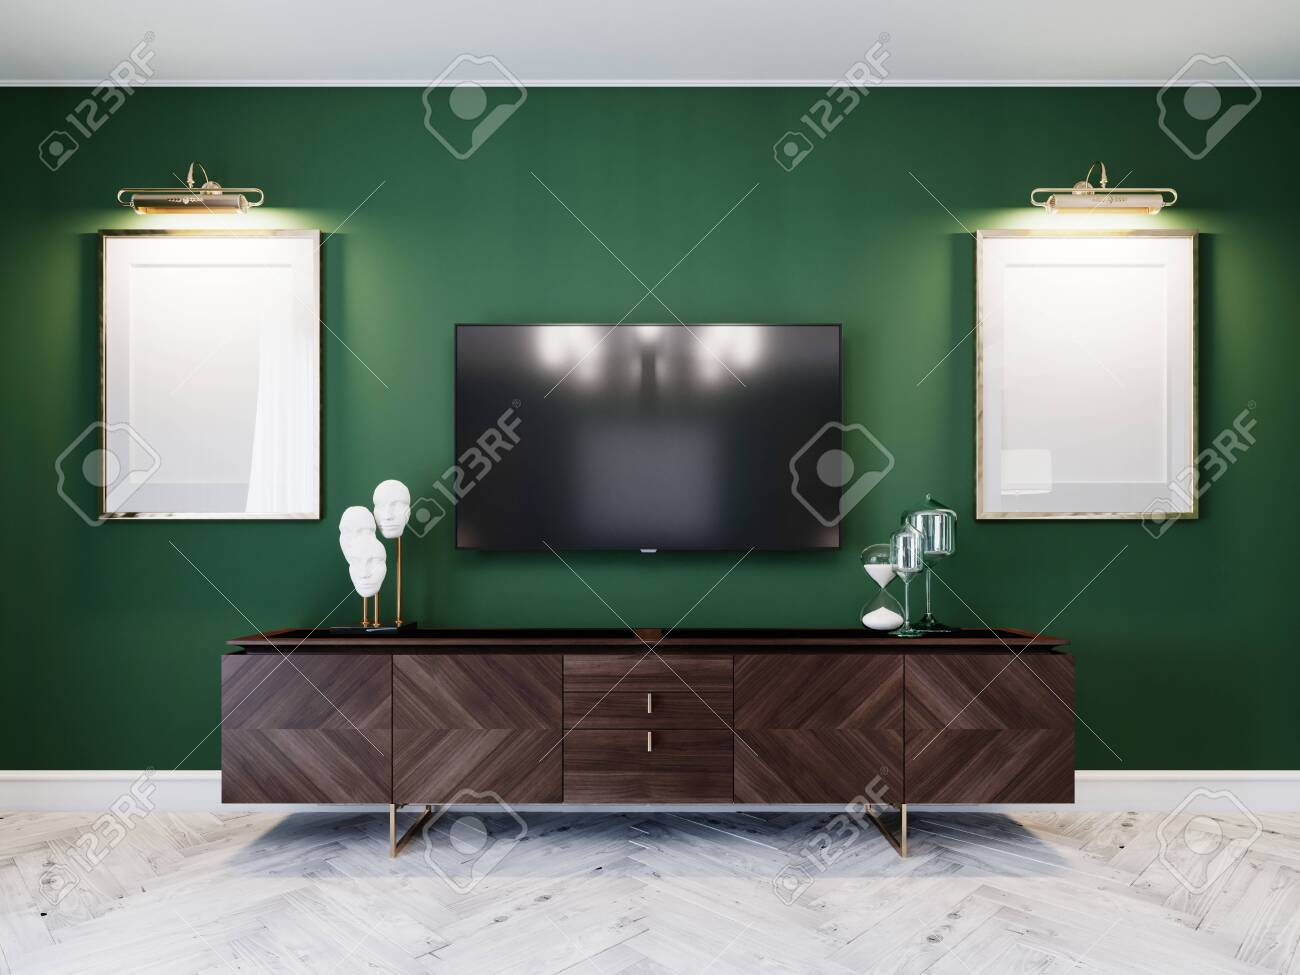 Tv Unit In The Living Room With A Chest Of Drawers Two Paintings Stock Photo Picture And Royalty Free Image 150530190